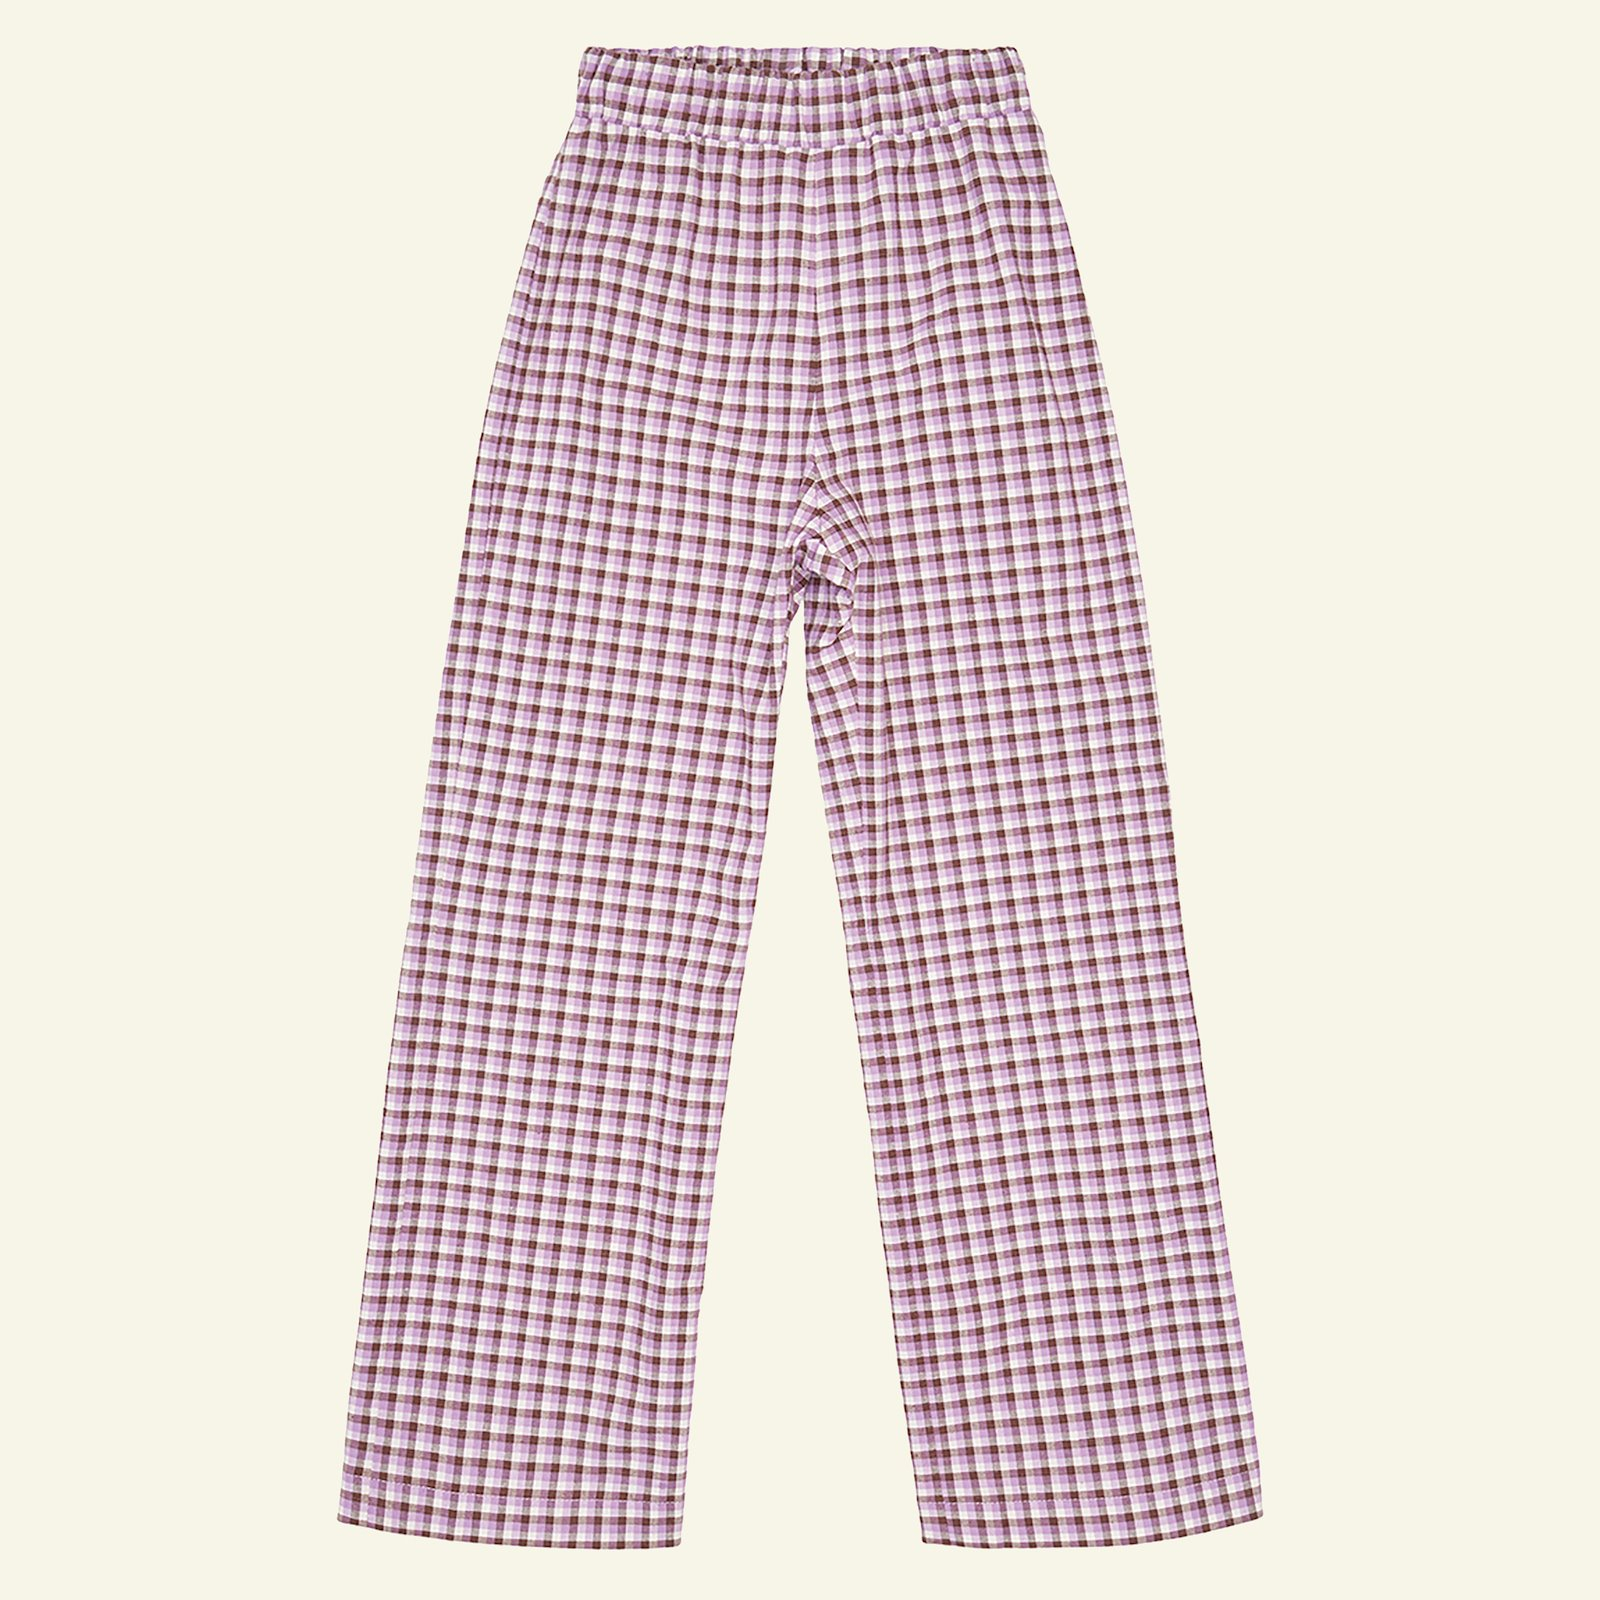 High waist and wide lege trouser, 110/5y p60034_501795_sskit